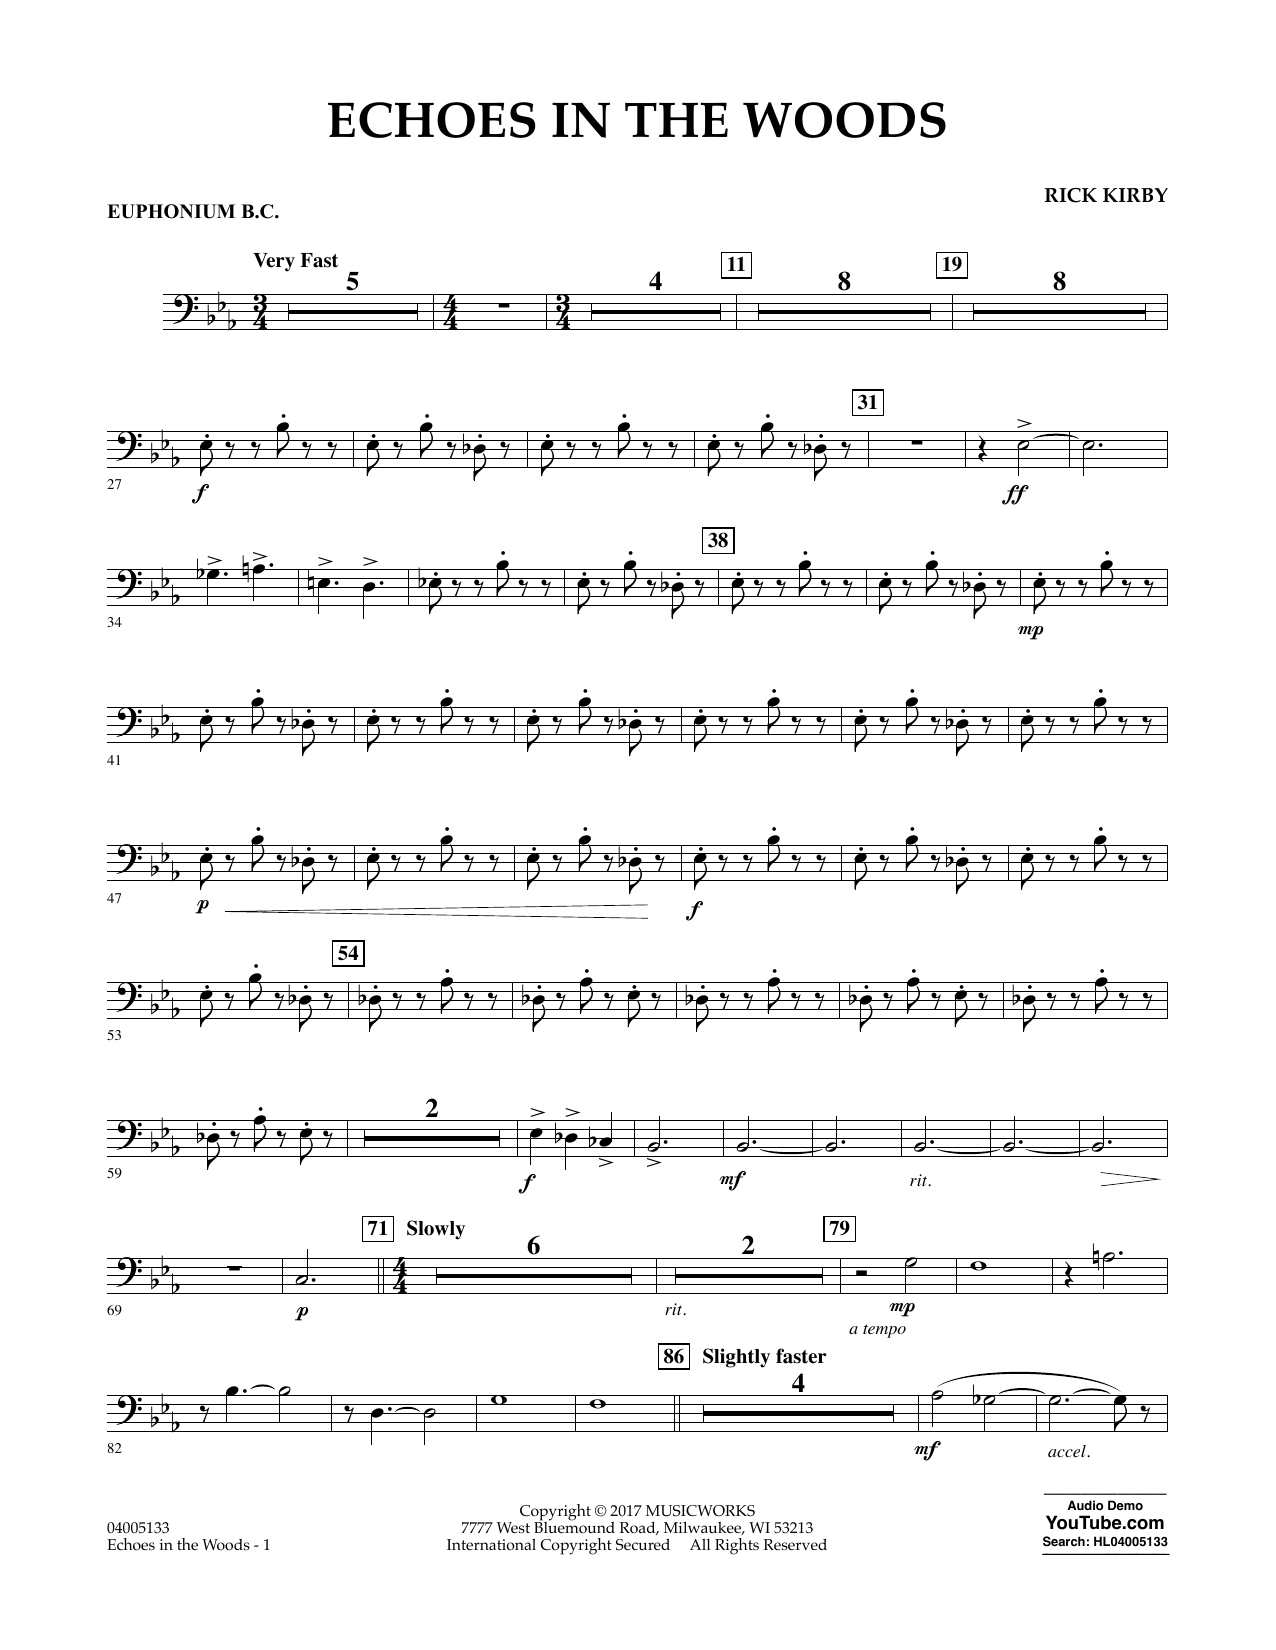 Echoes in the Woods - Euphonium in Bass Clef Partituras Digitales